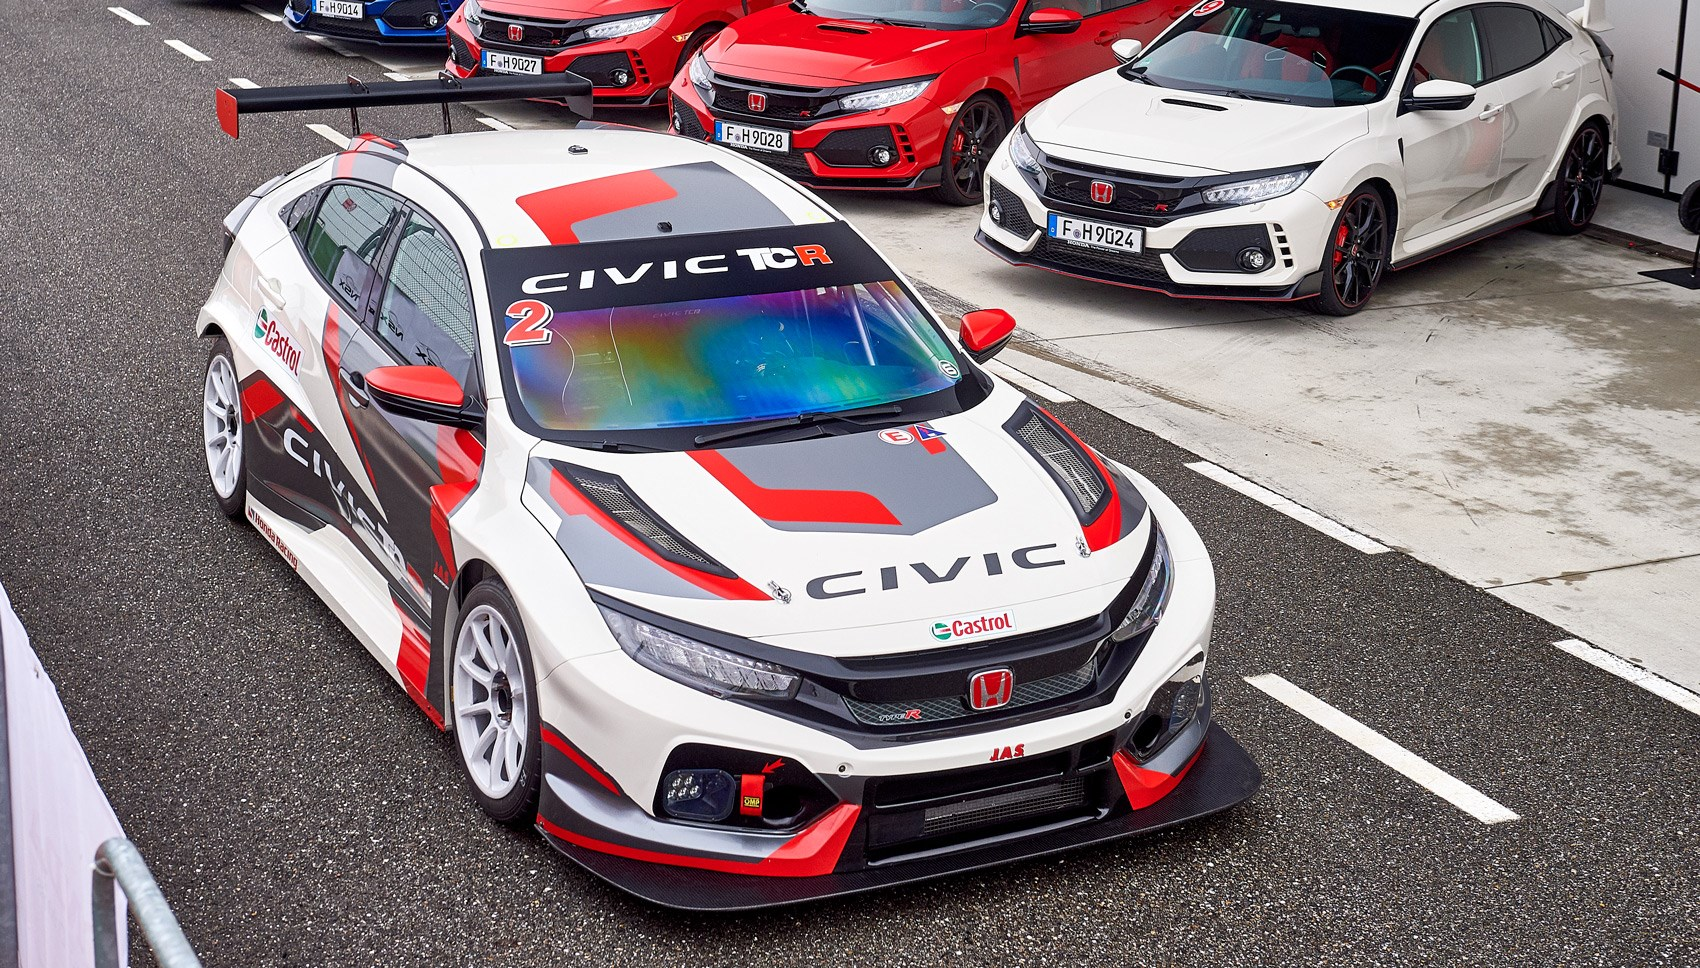 Honda Civic TCR overhead